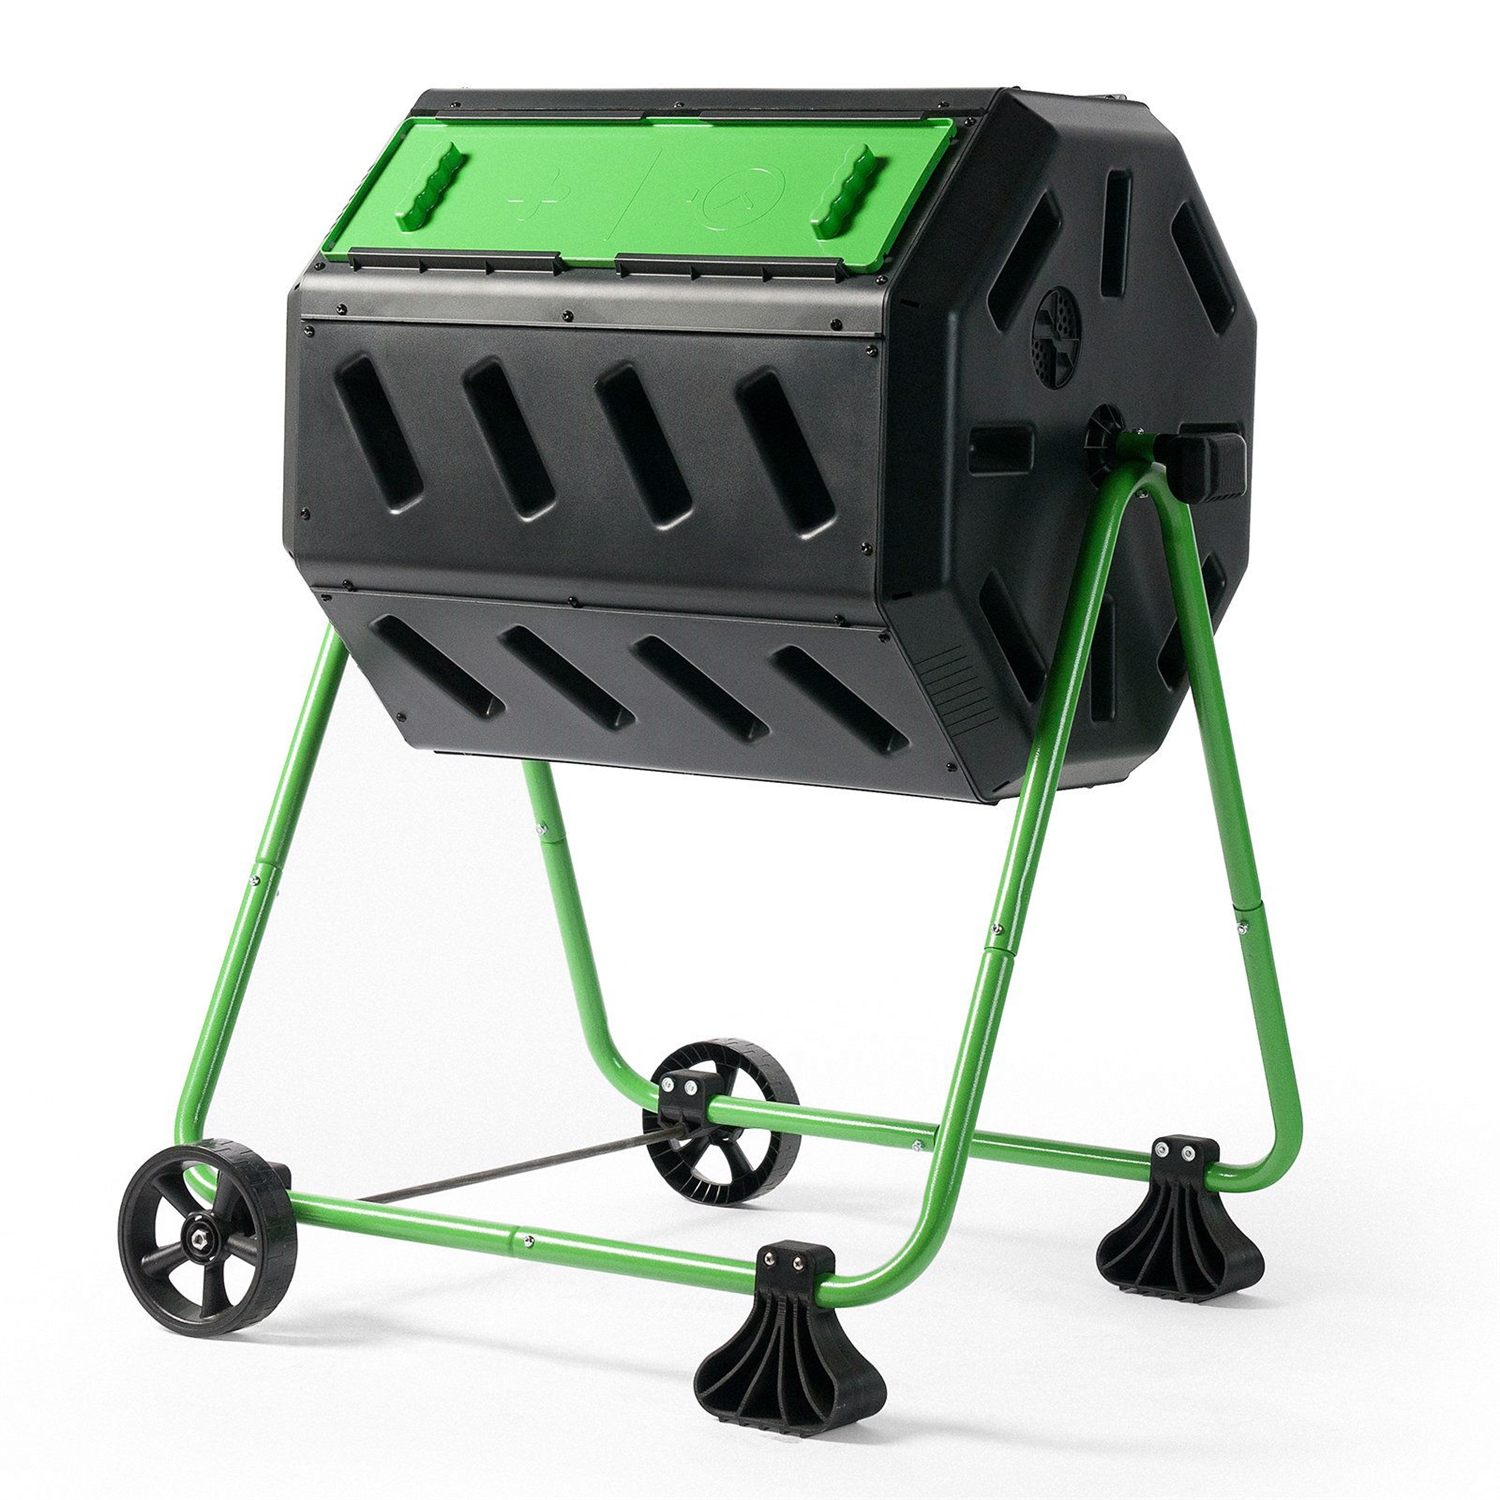 Tumbler 5-Cubic Ft Compost Bin for Home Composting with Heavy Duty Frame